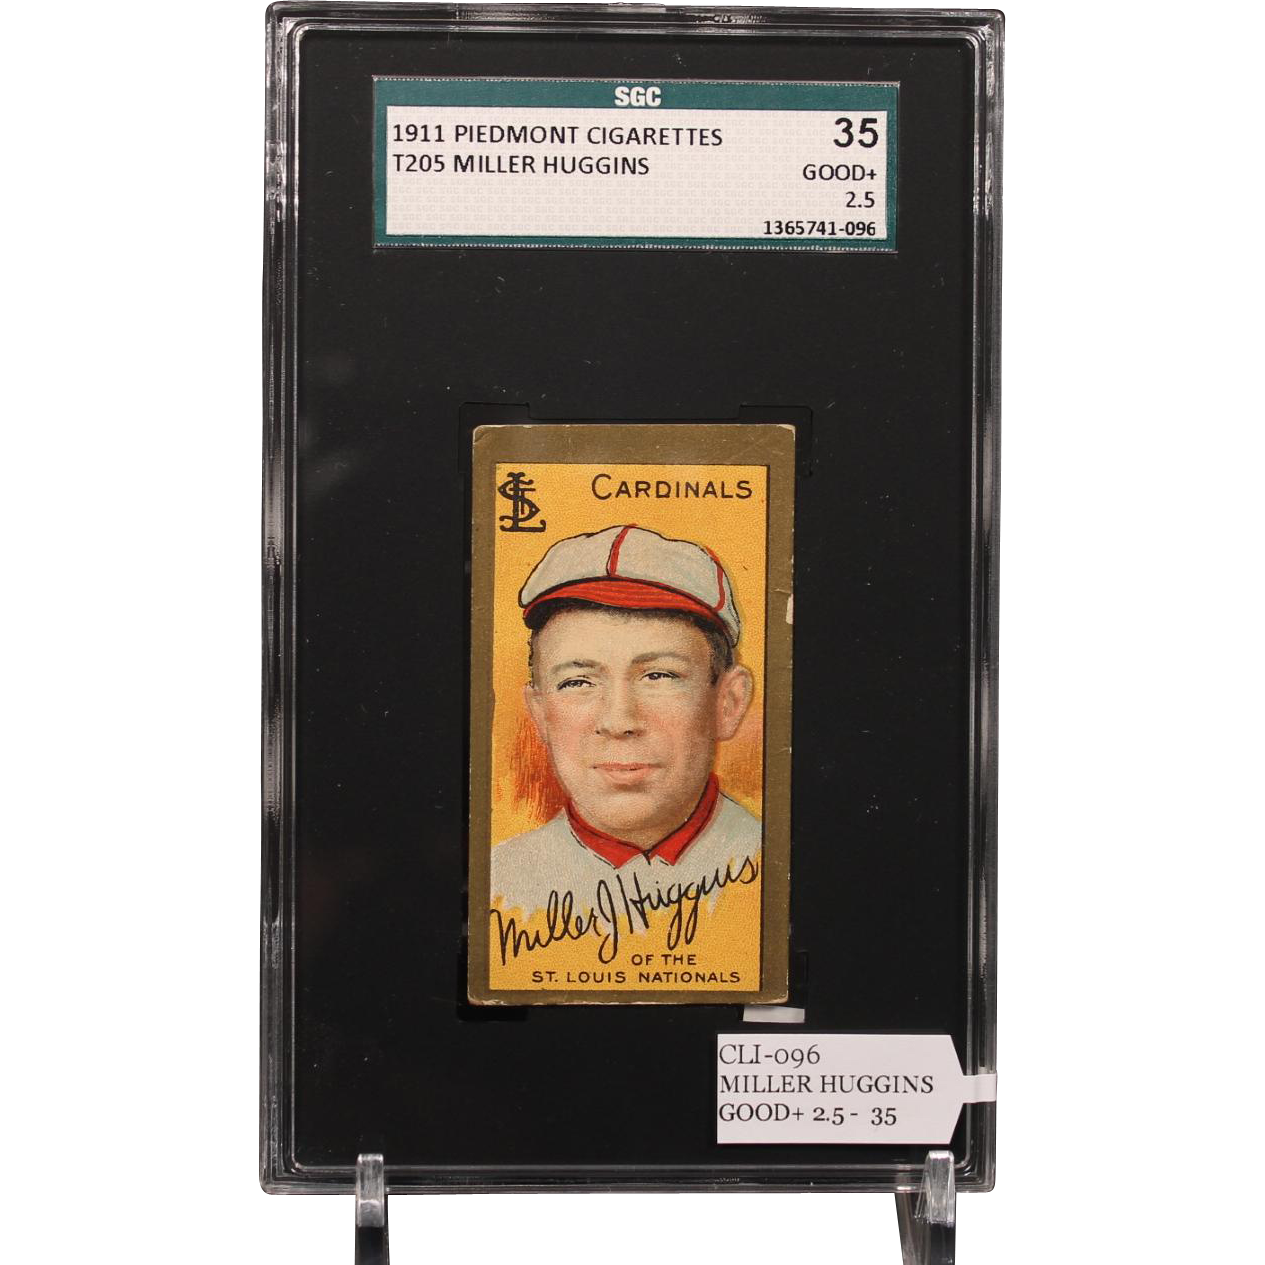 T205 Miller Huggins SGC grade 35 GOOD+ 2.5